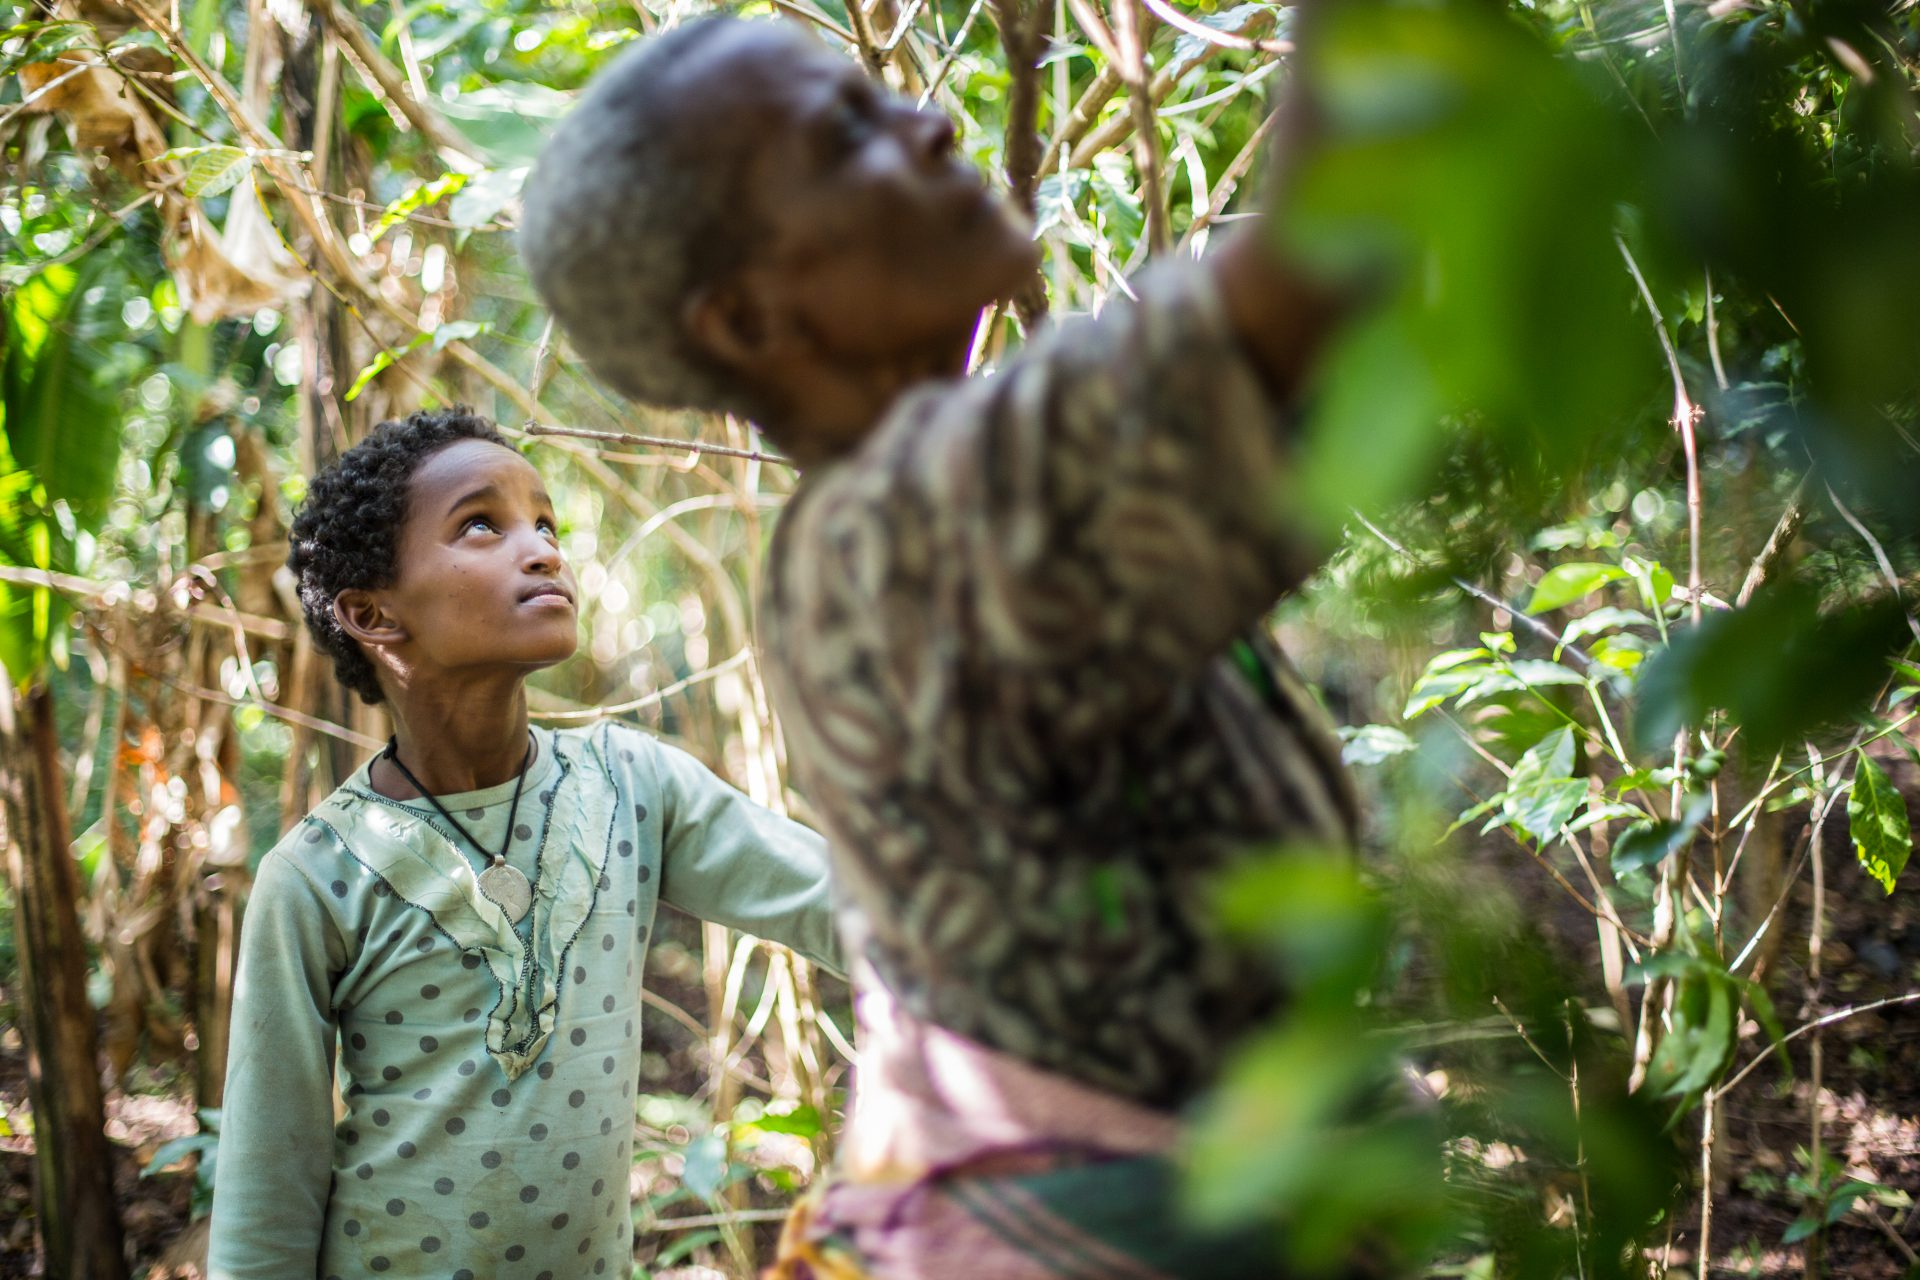 Amelework, 9, watches and learns as her grandmother picks coffee in Mankusa, West Gojjam, Ethiopia. ©WaterAid/Genaye Eshetu